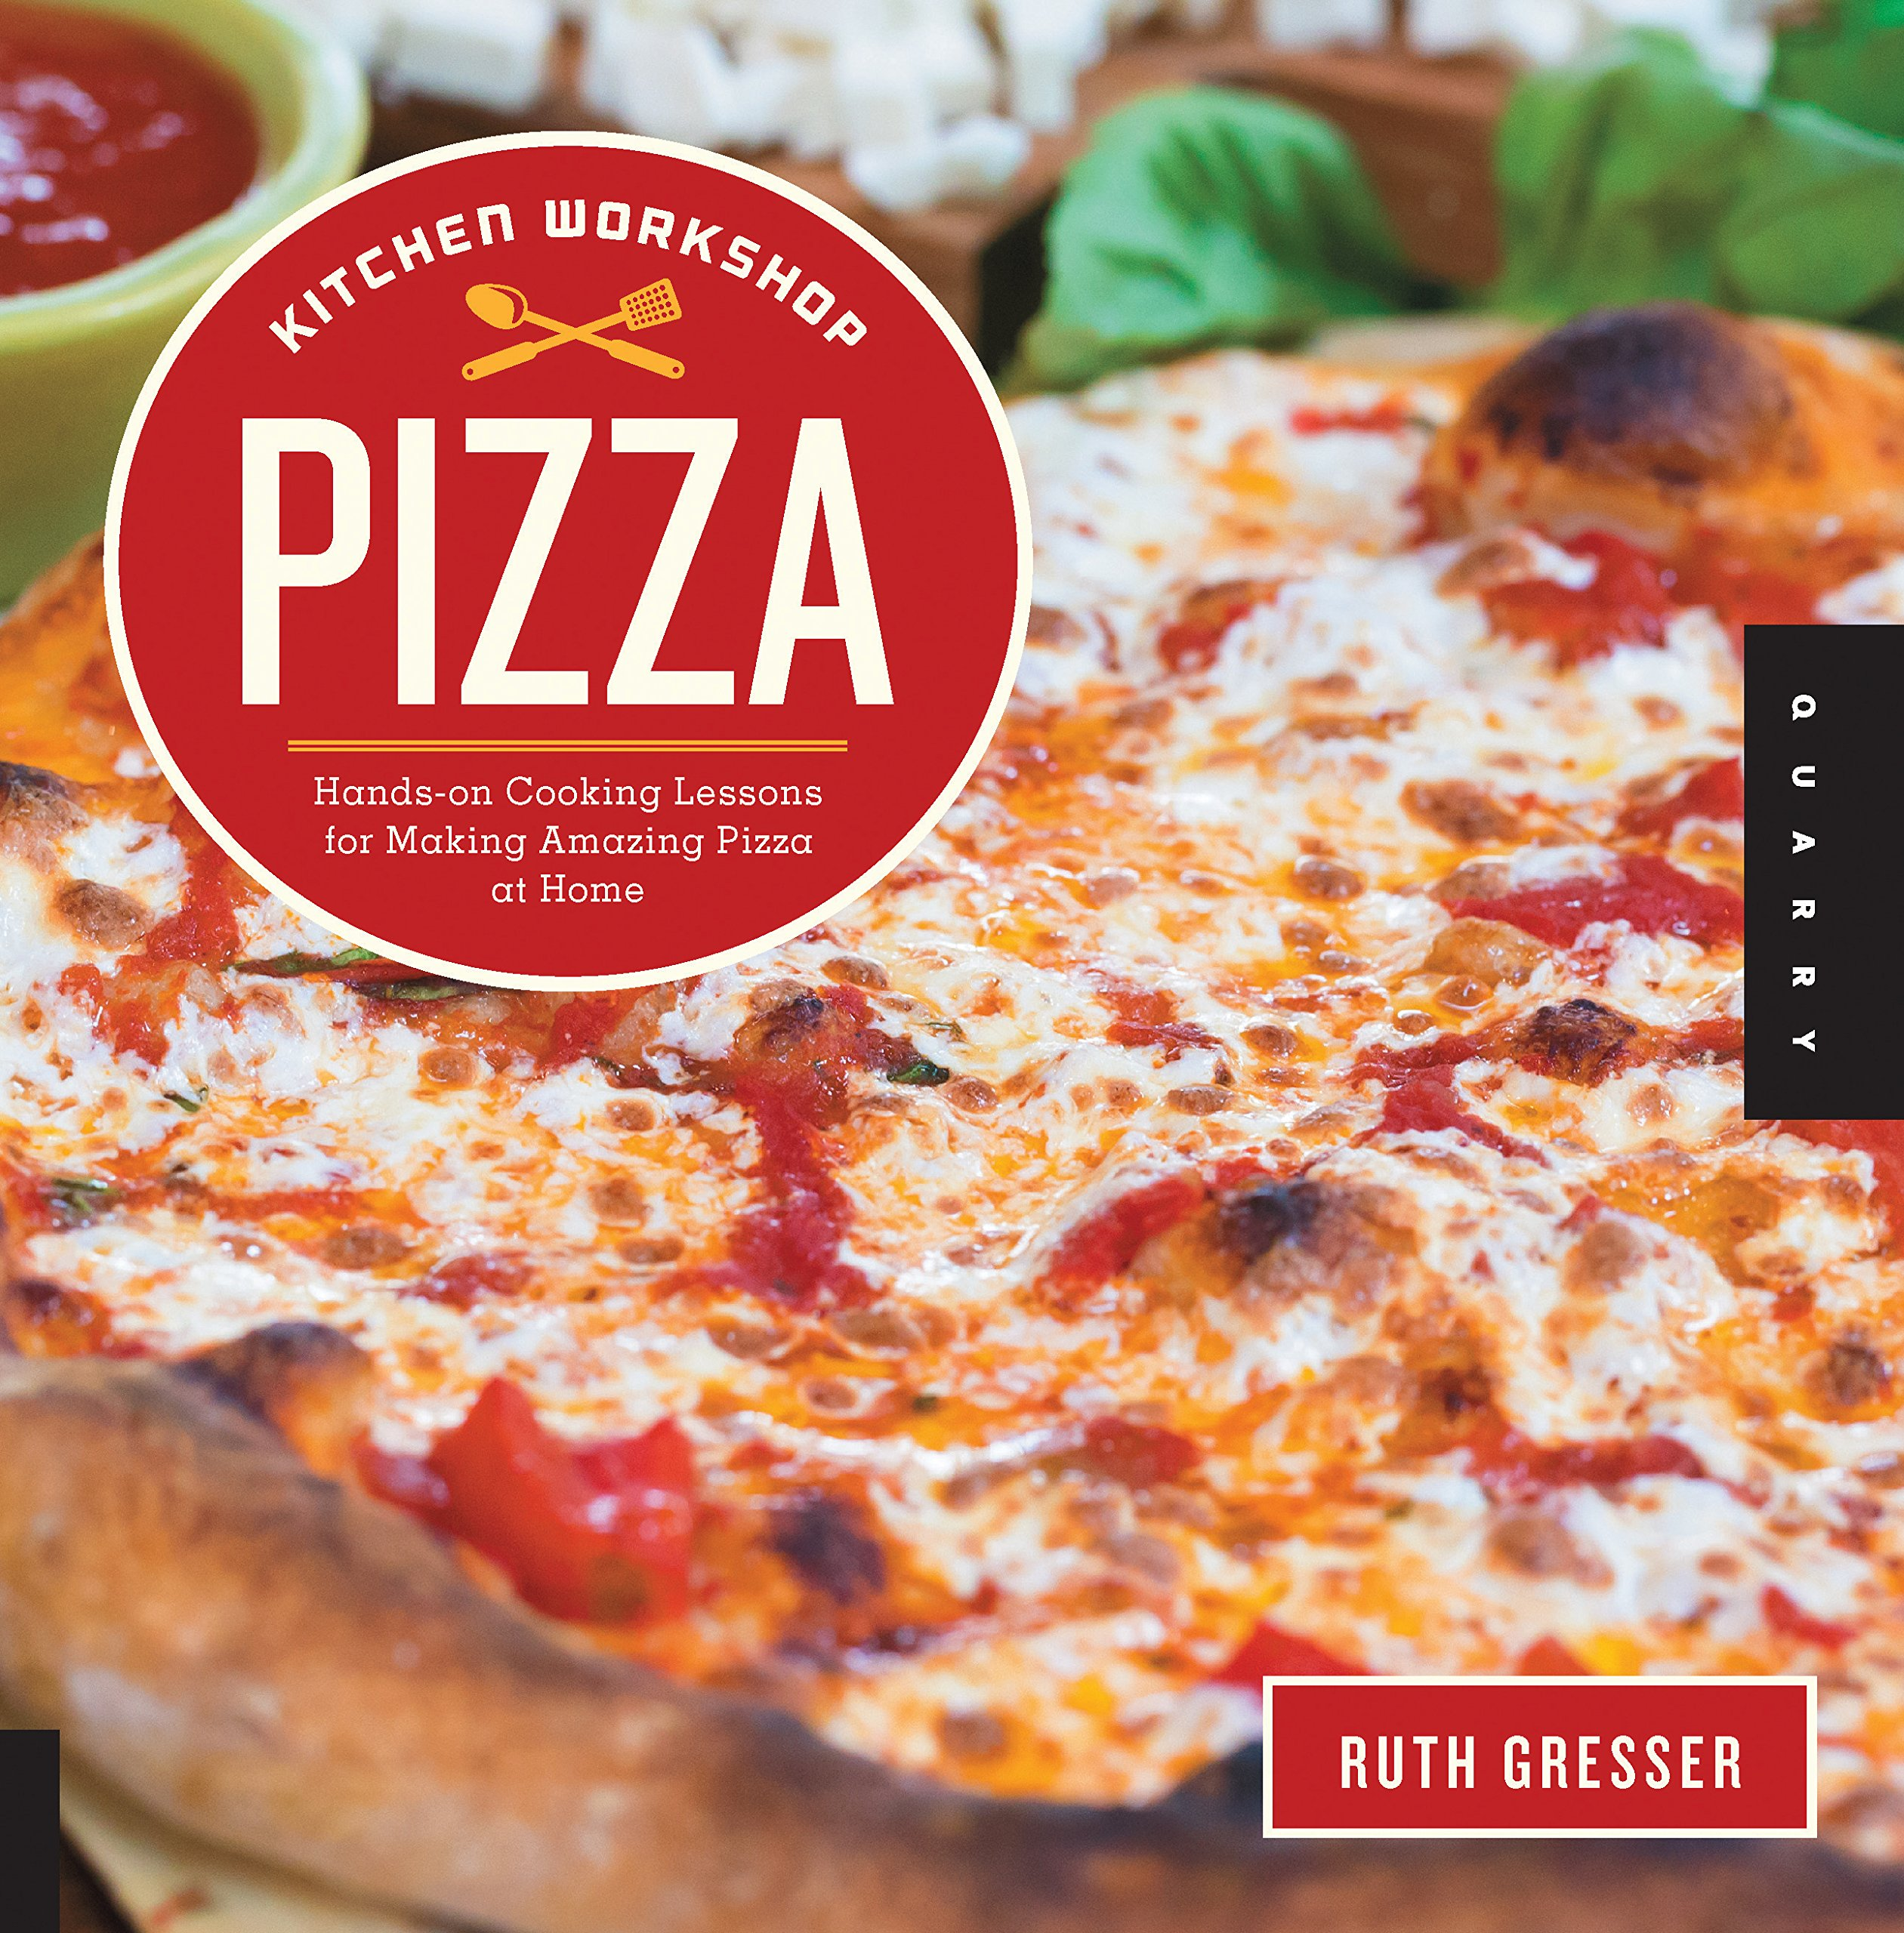 Kitchen Workshop-Pizza: Hands-on Cooking Lessons for Making Amazing Pizza at Home pdf